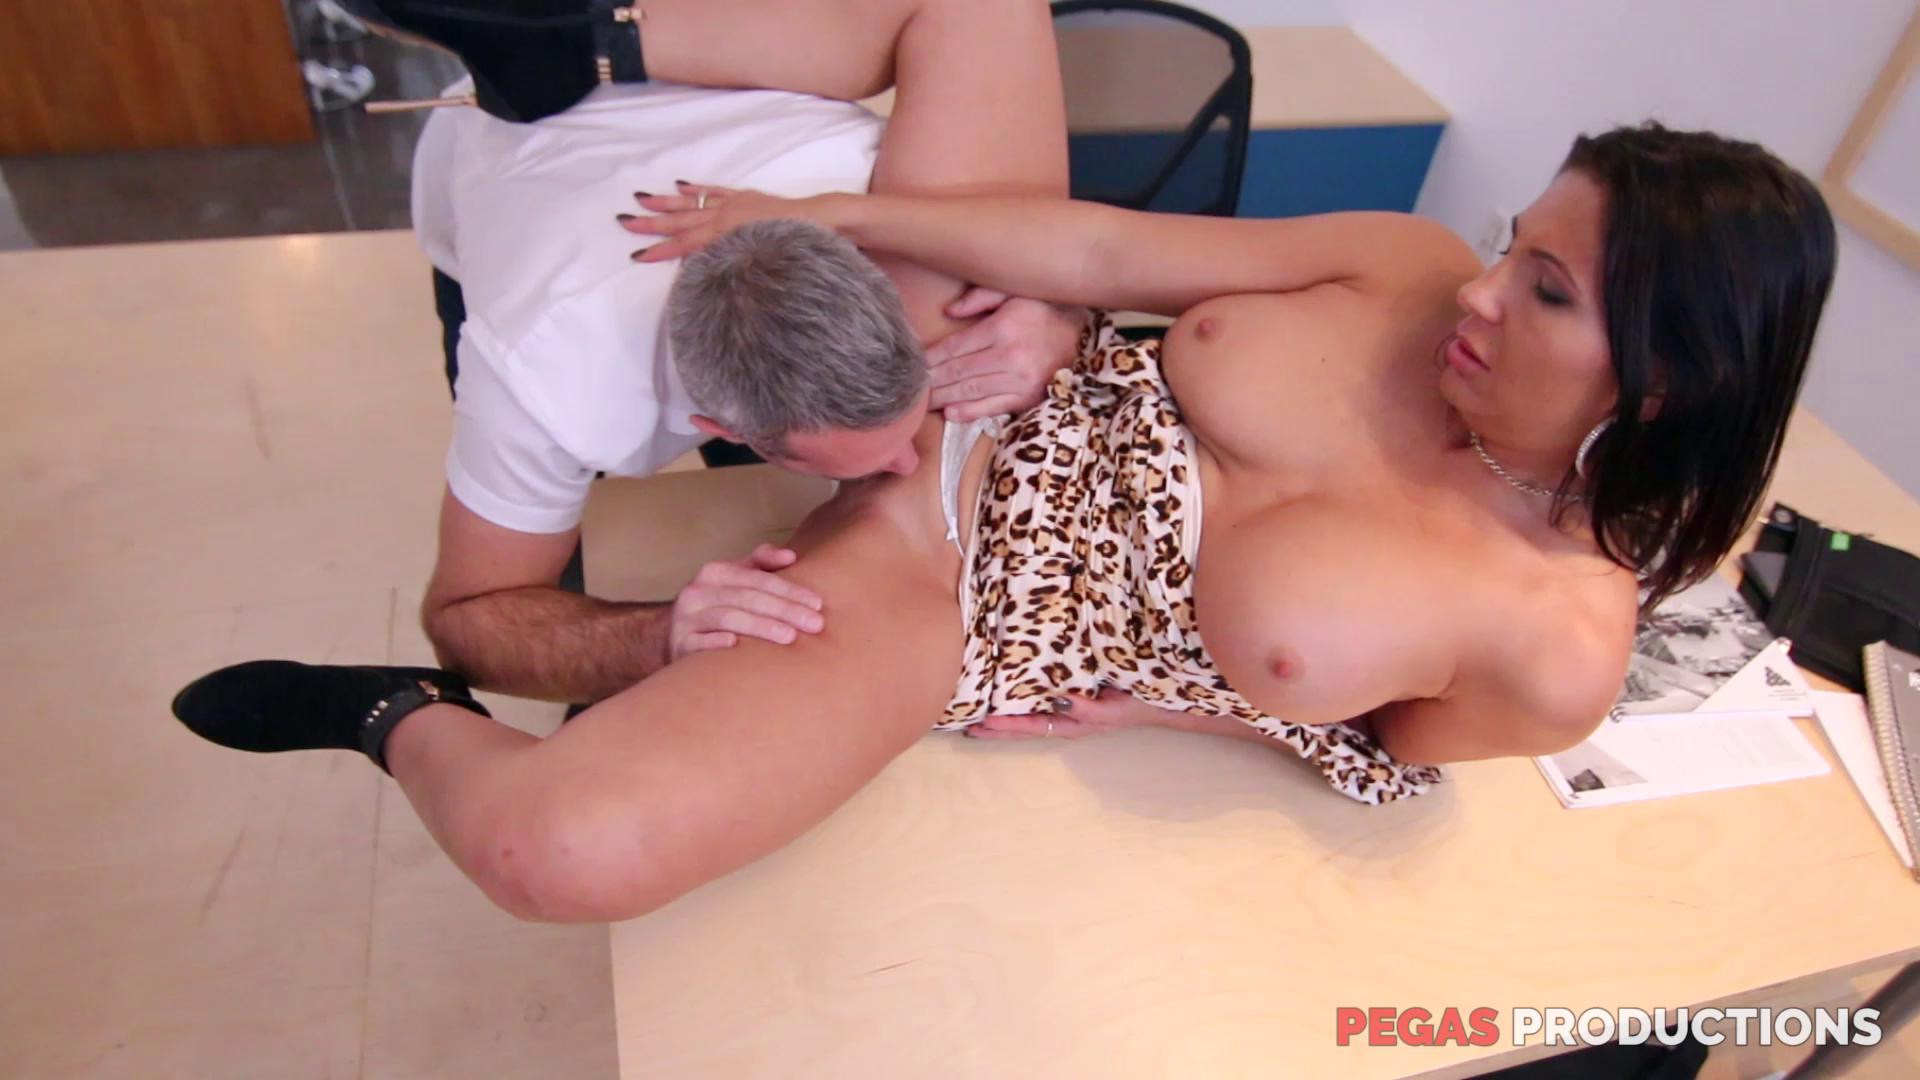 PegasProductions – Missy Gold My Boss Likes It In The Ass FRENCH